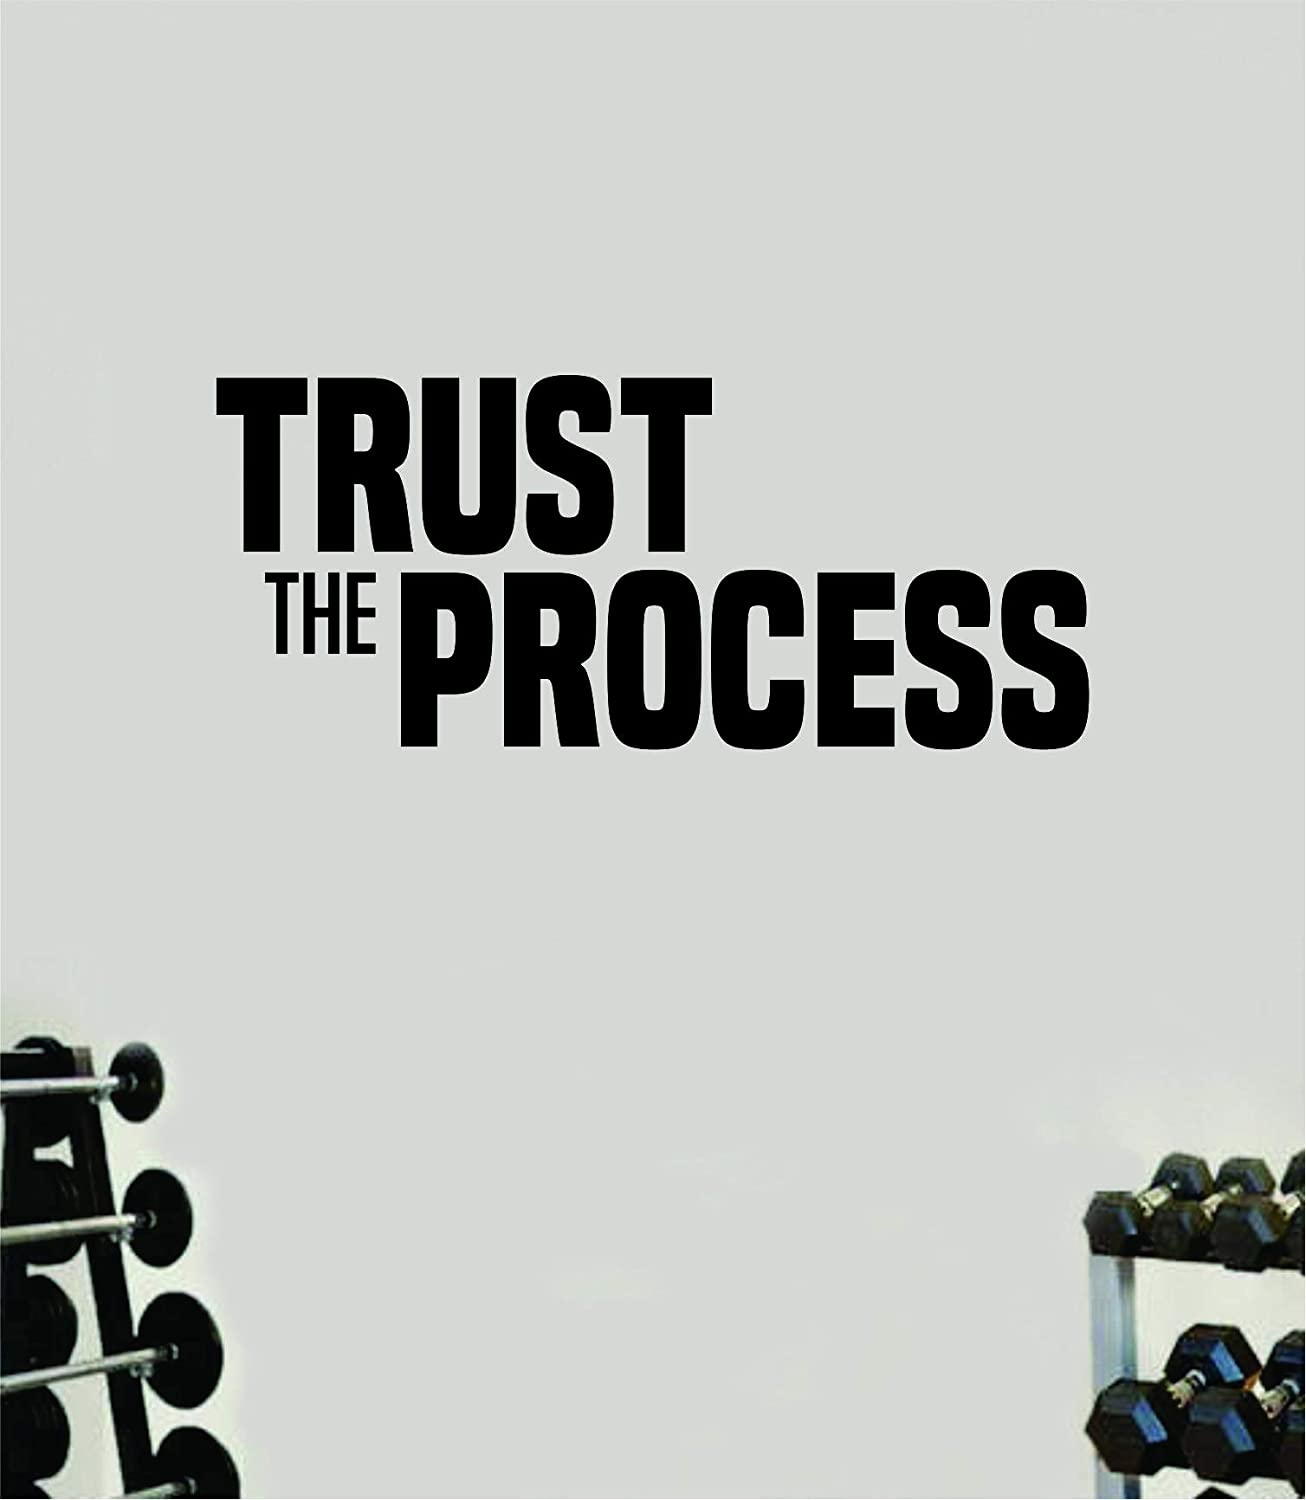 Trust The Process V3 Gym Quote Wall Decal Quote Sticker Vinyl Art Home Decor Room Bedroom Inspirational Motivational Fitness Lift Sports Health